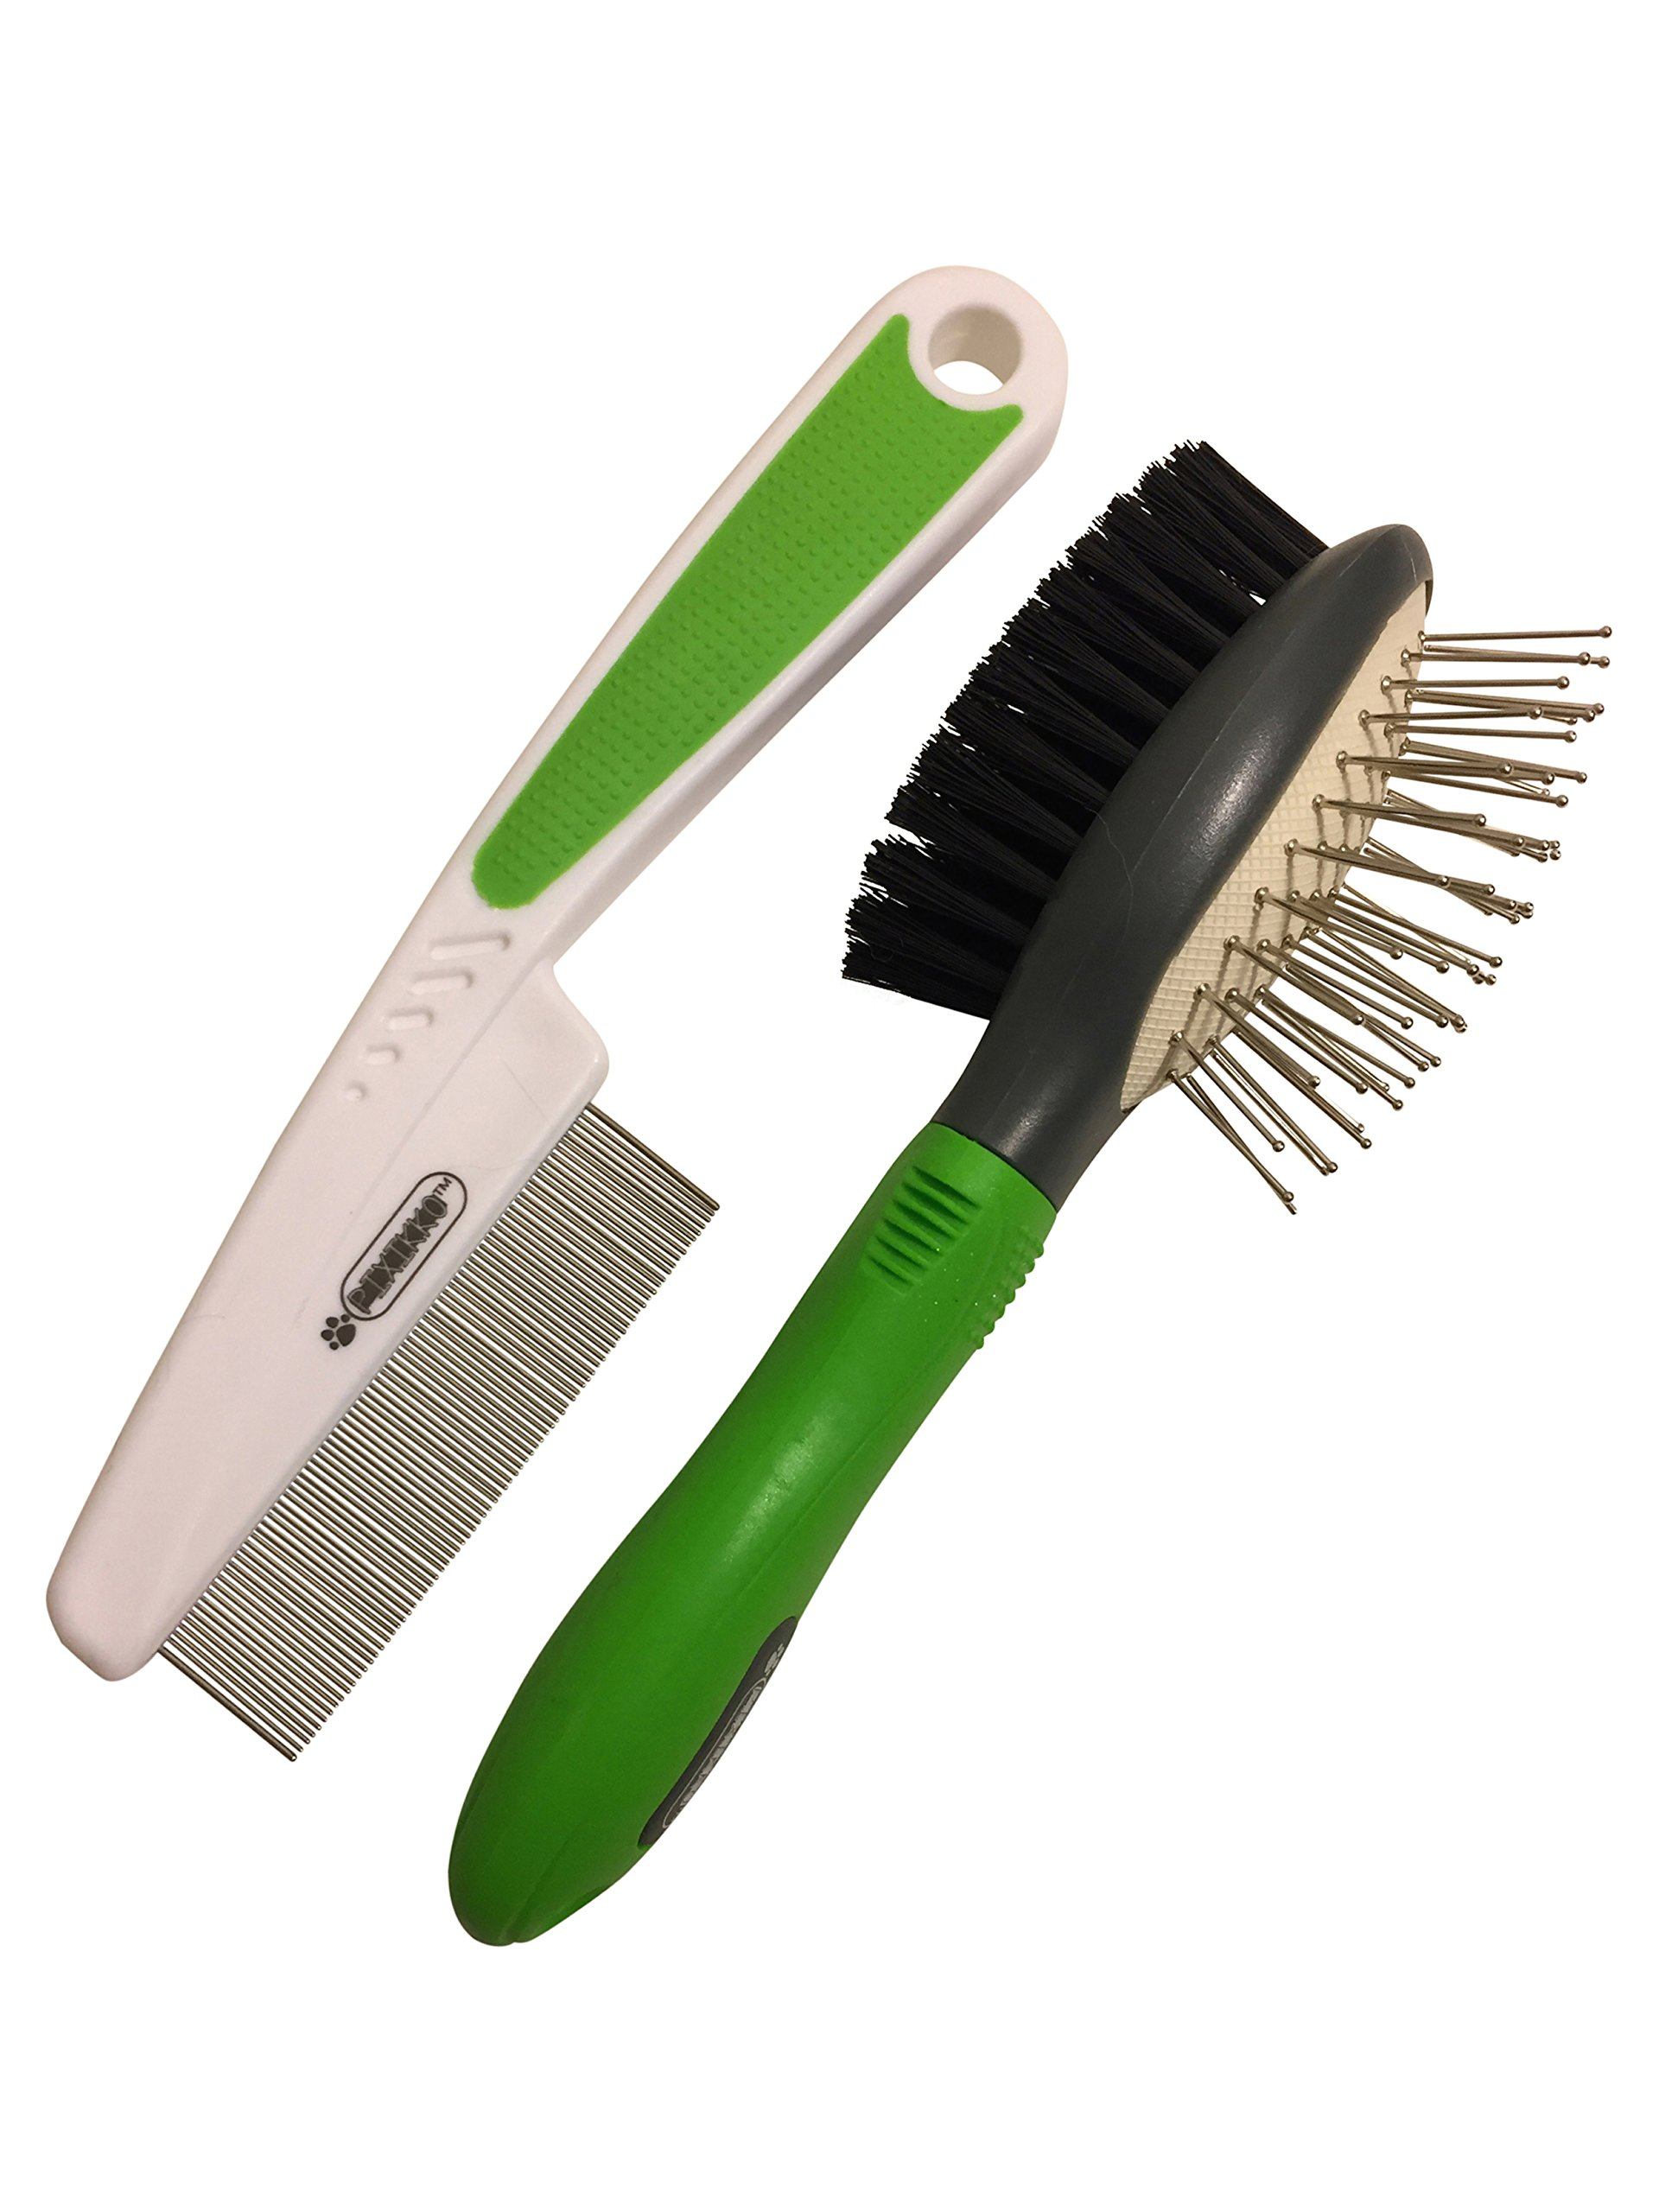 Pixikko 2-PC Pet Grooming Set: Flea Comb + Pin Bristle Double Sided Brush for Cats, Kittens, Small Dogs, Small Animals Daily Grooming.